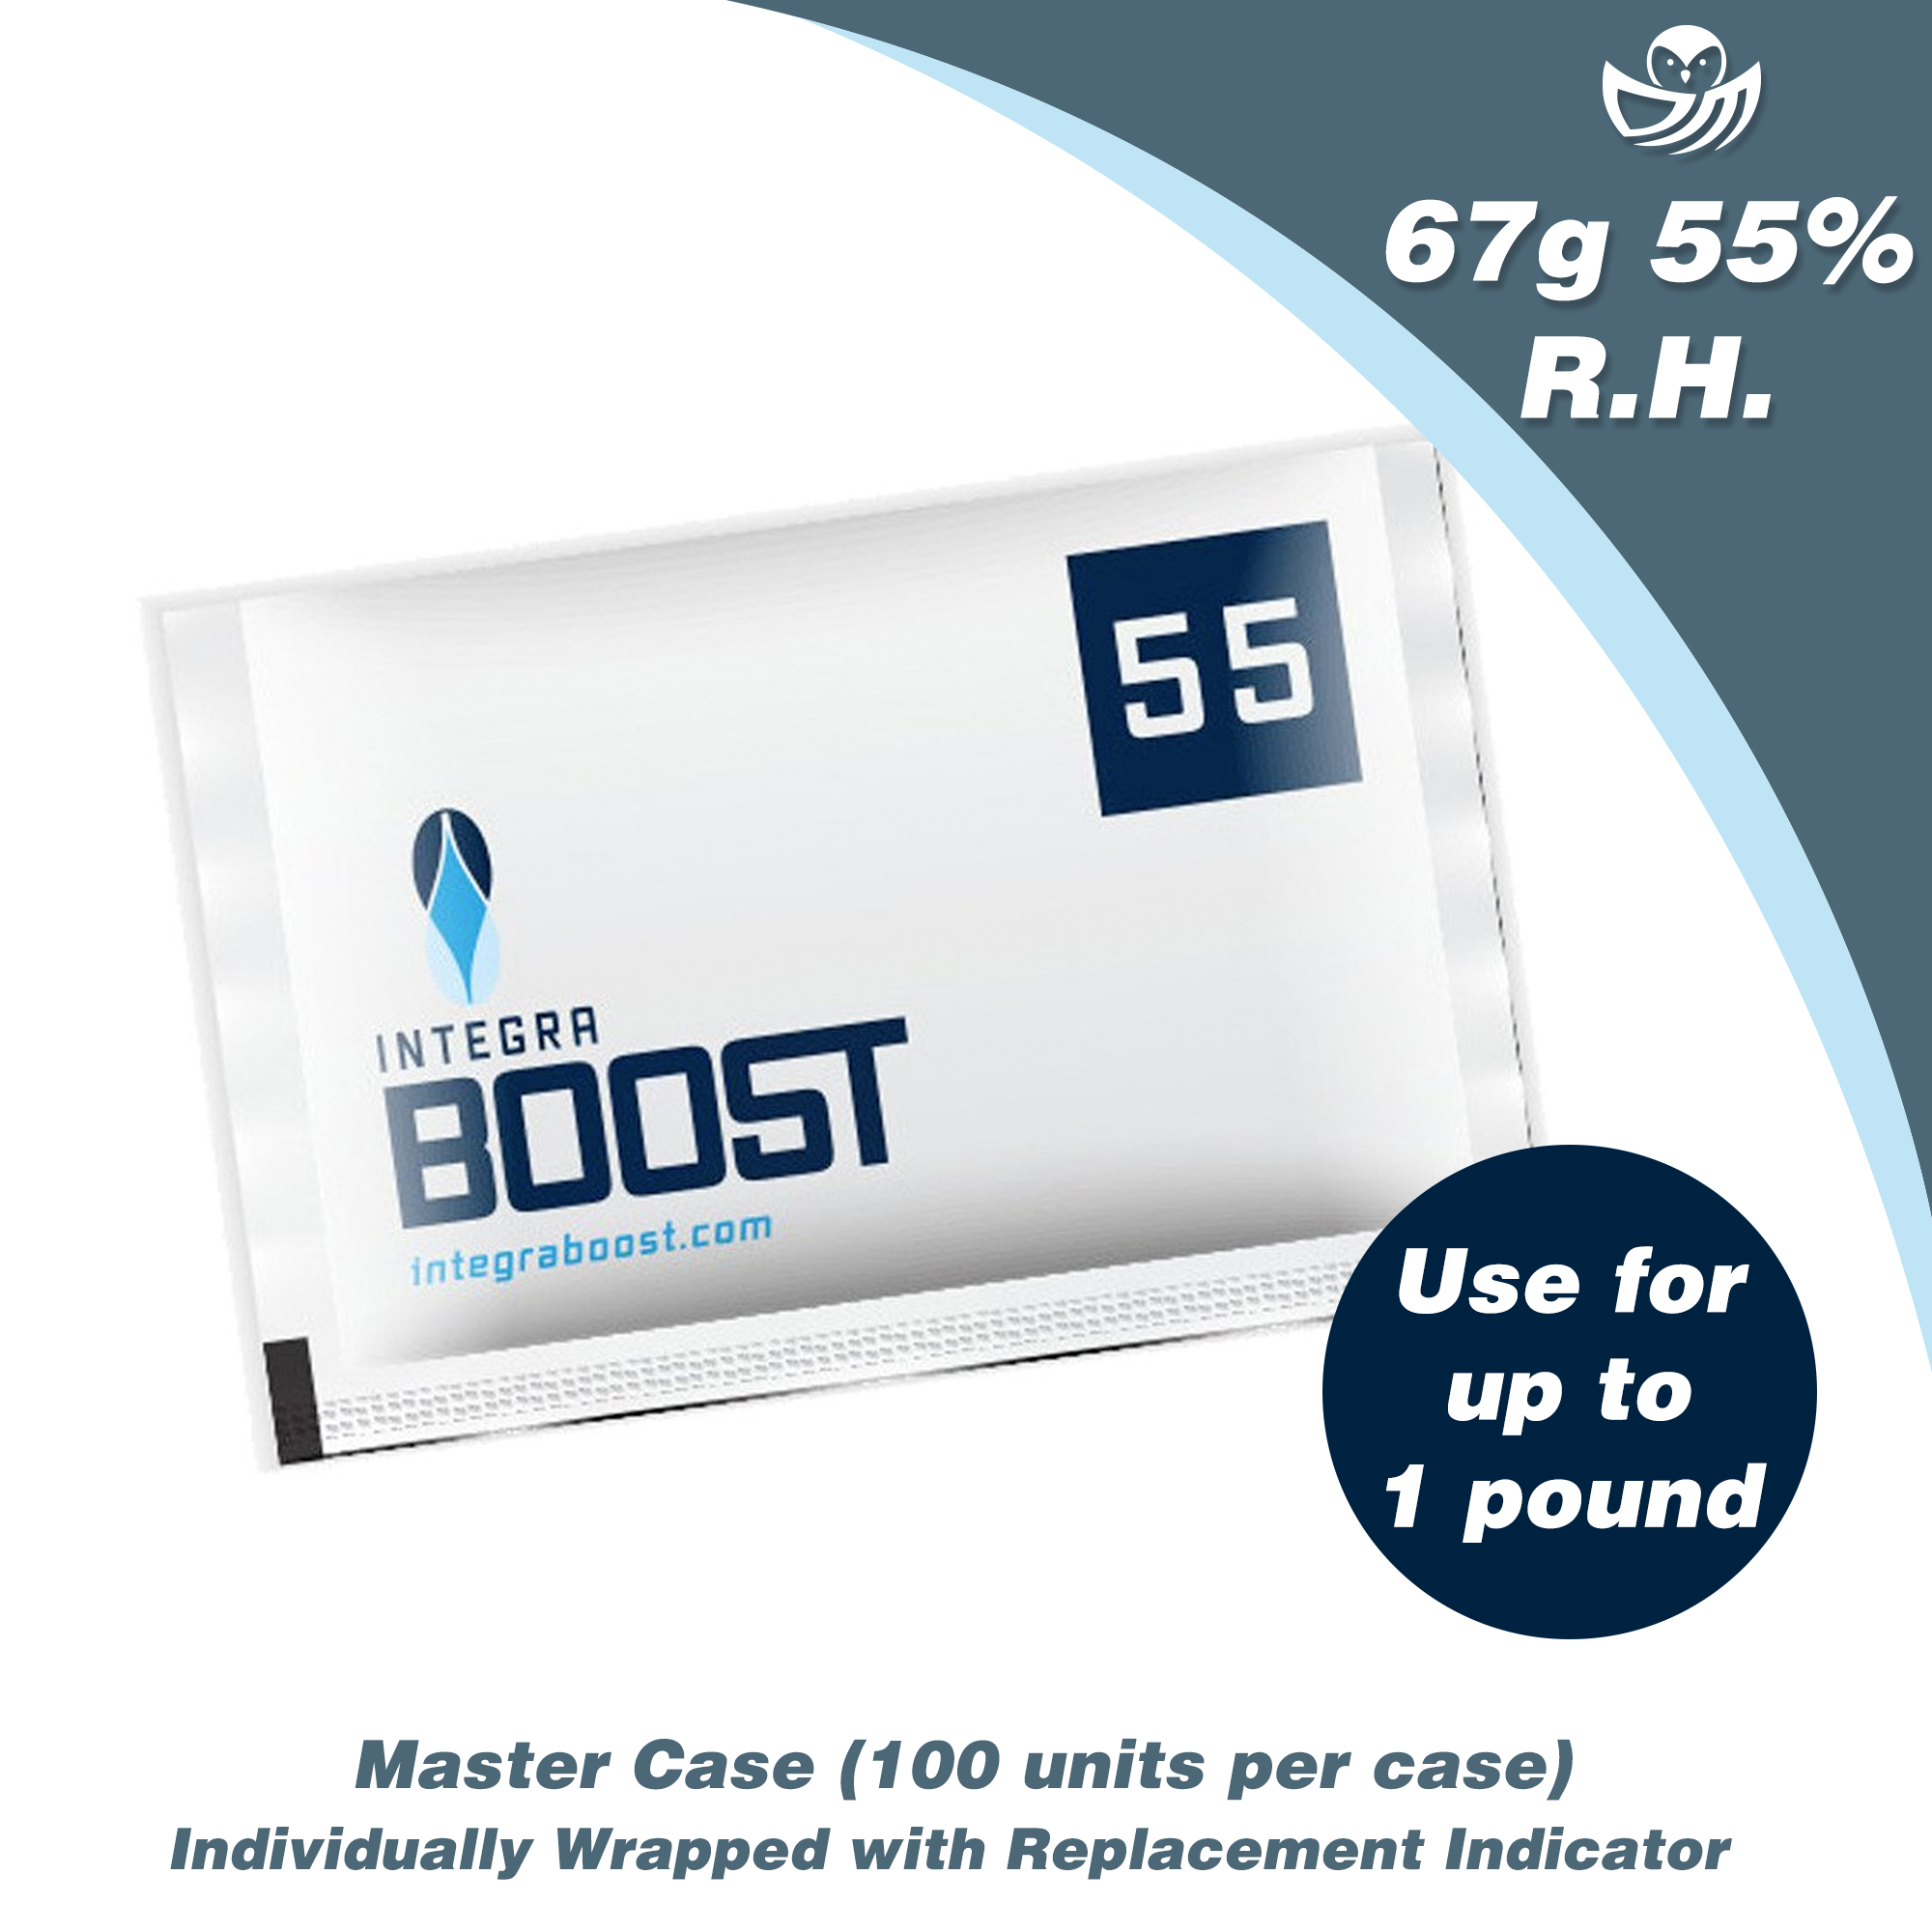 67g Integra™ Boost™ 55% - Master Cases - 100 count